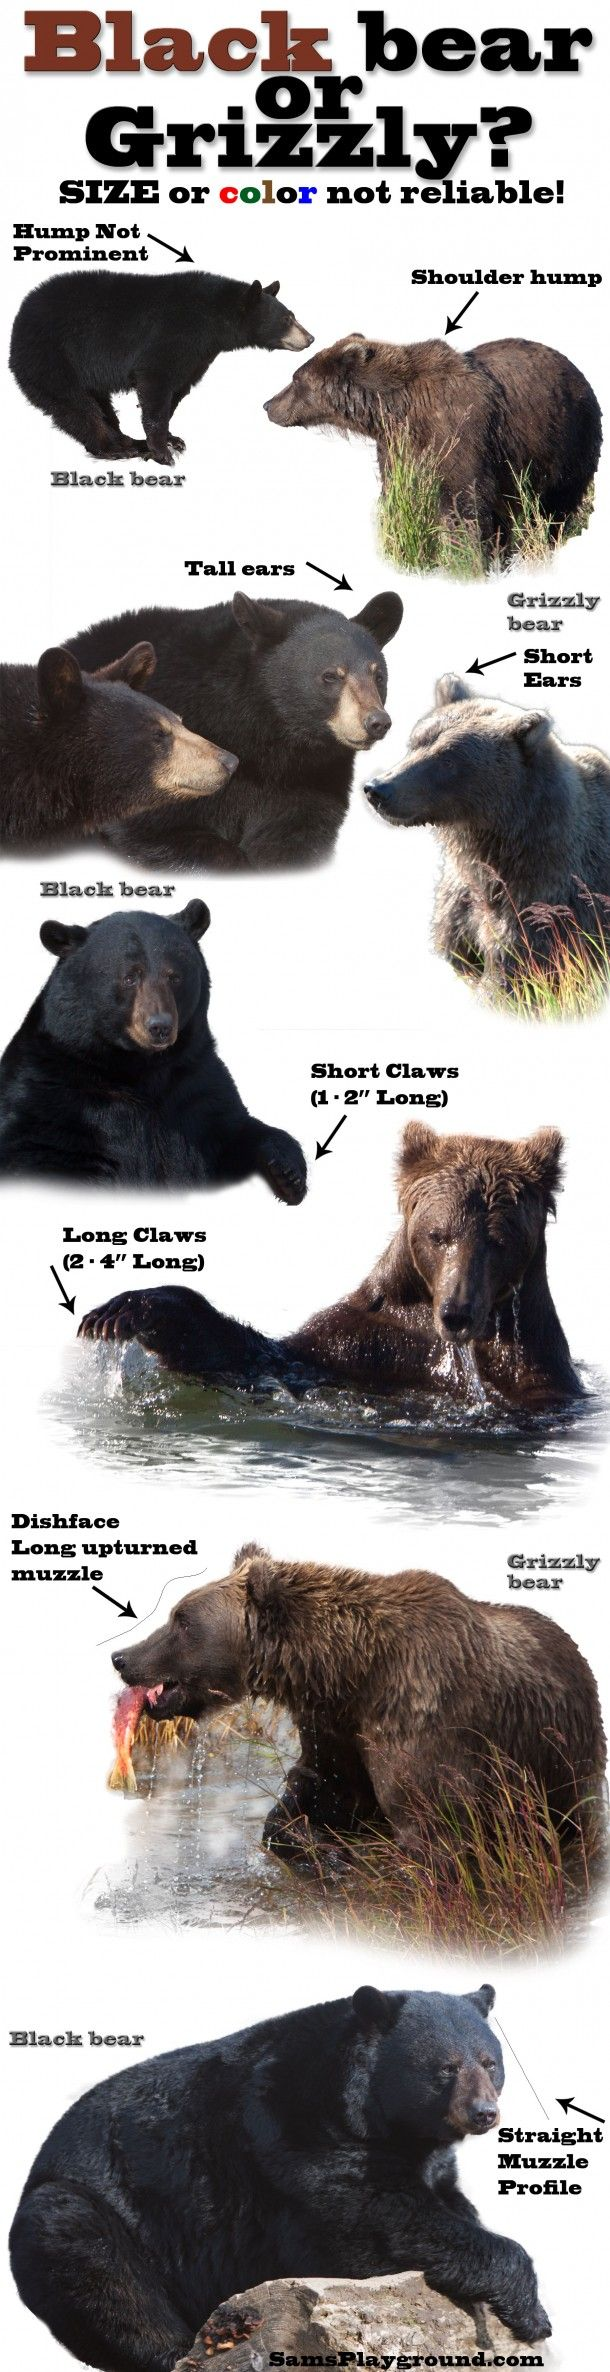 Black Bear or Grizzly Bear Infographic...not sure I want to be lose enough to examine them...